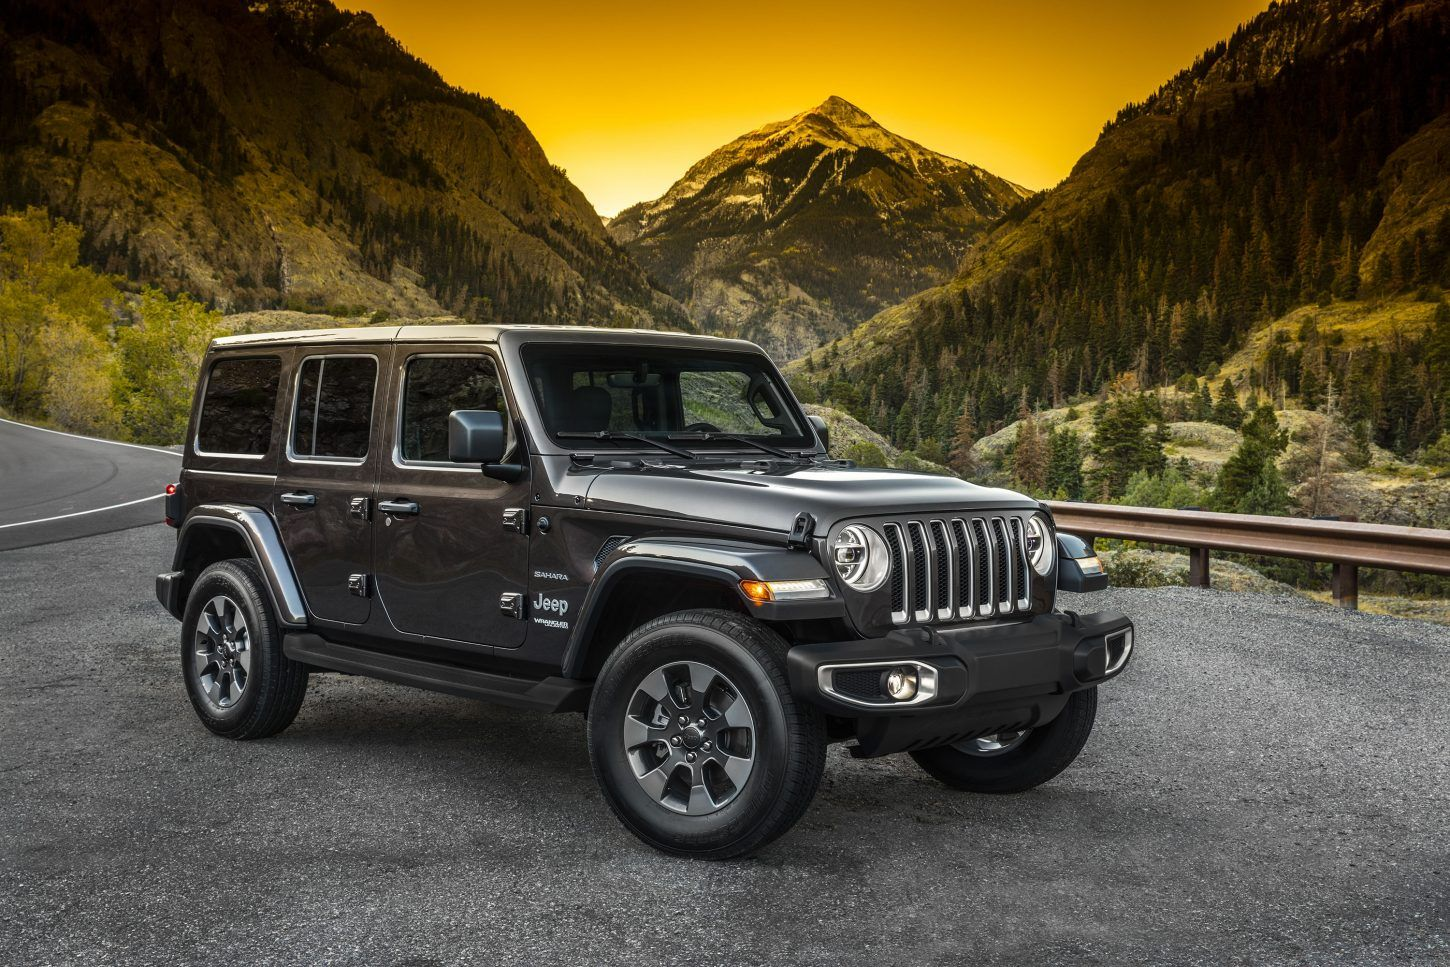 2020 Jeep Wrangler Review Styling Specs Price Interior